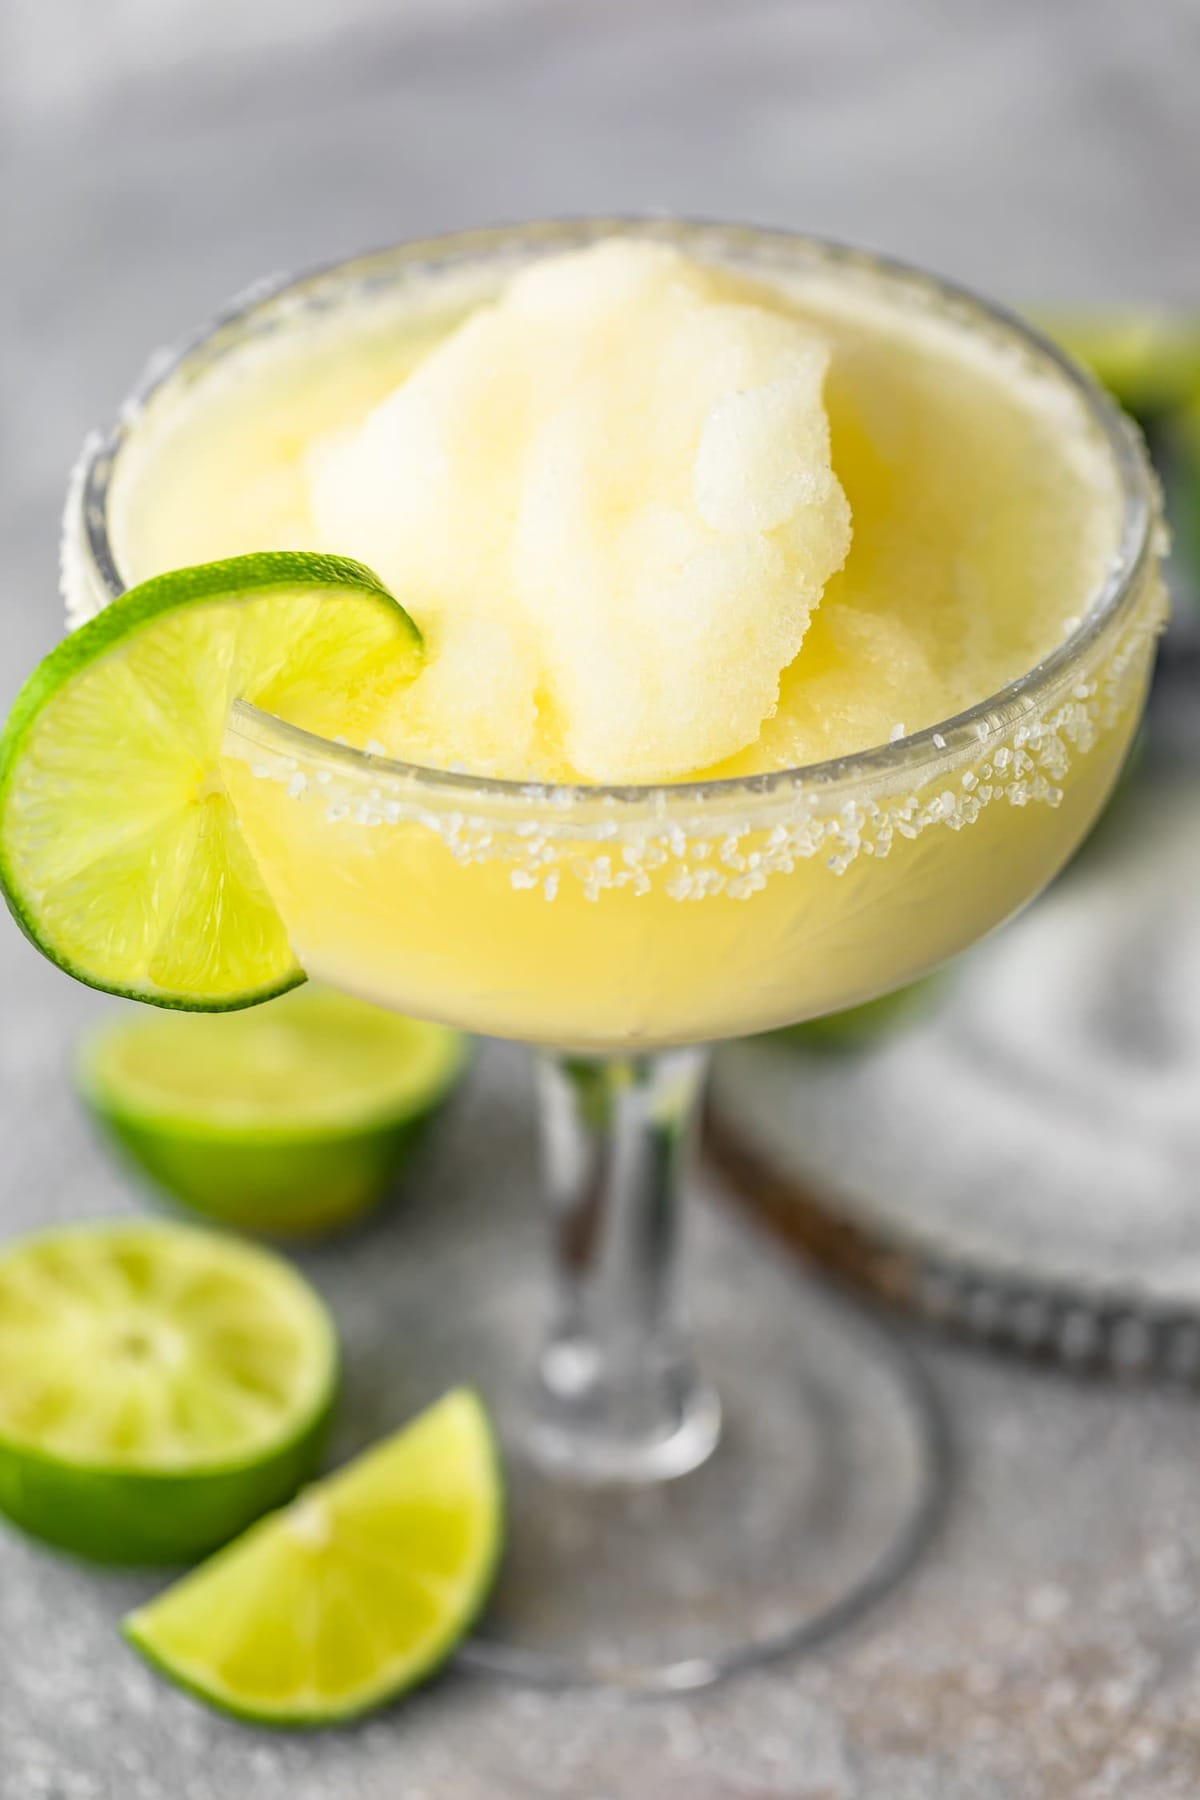 A margarita served in a glass with lime and salt